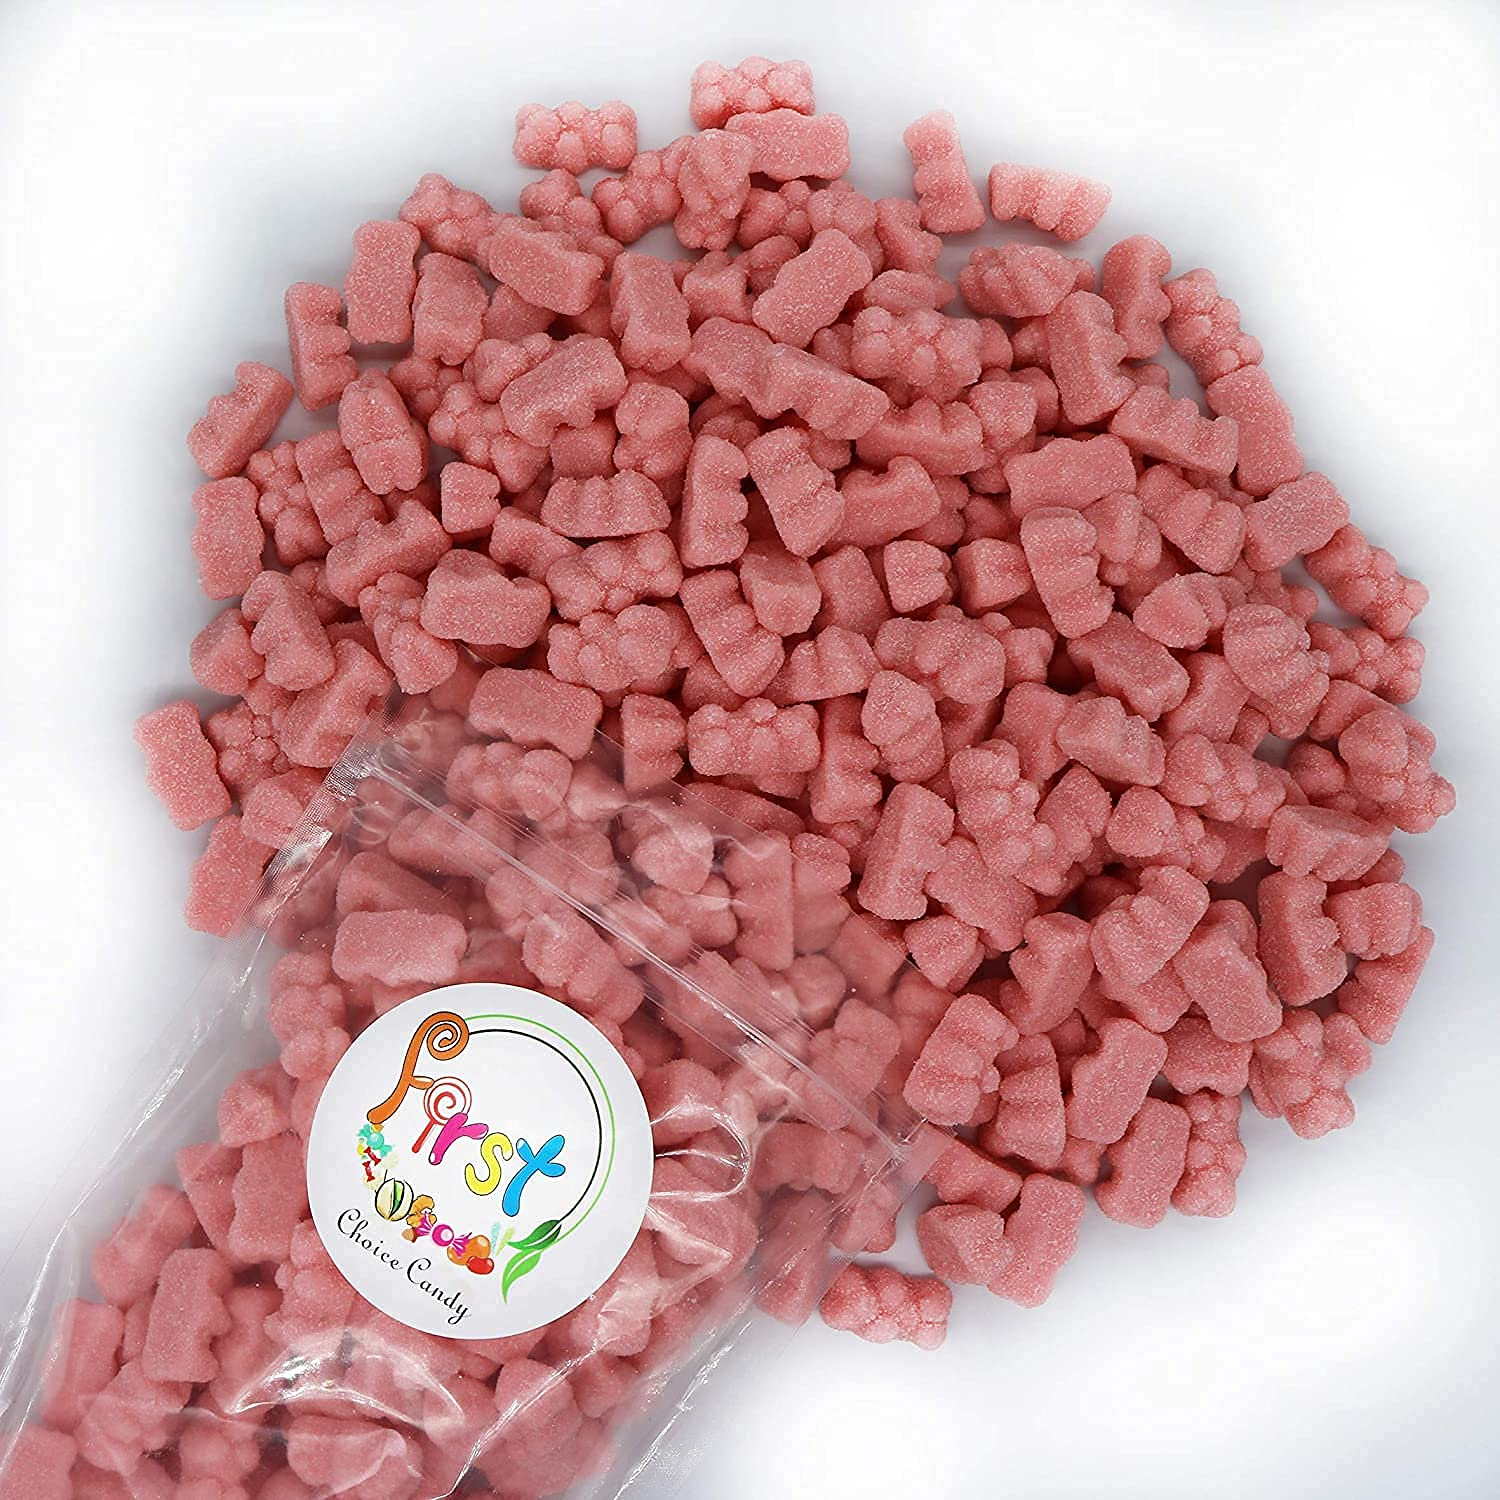 FirstChoiceCandy Sour Challenge the lowest price of Japan ☆ Wacky Gummy Watermelo Fun Bears New mail order Pink